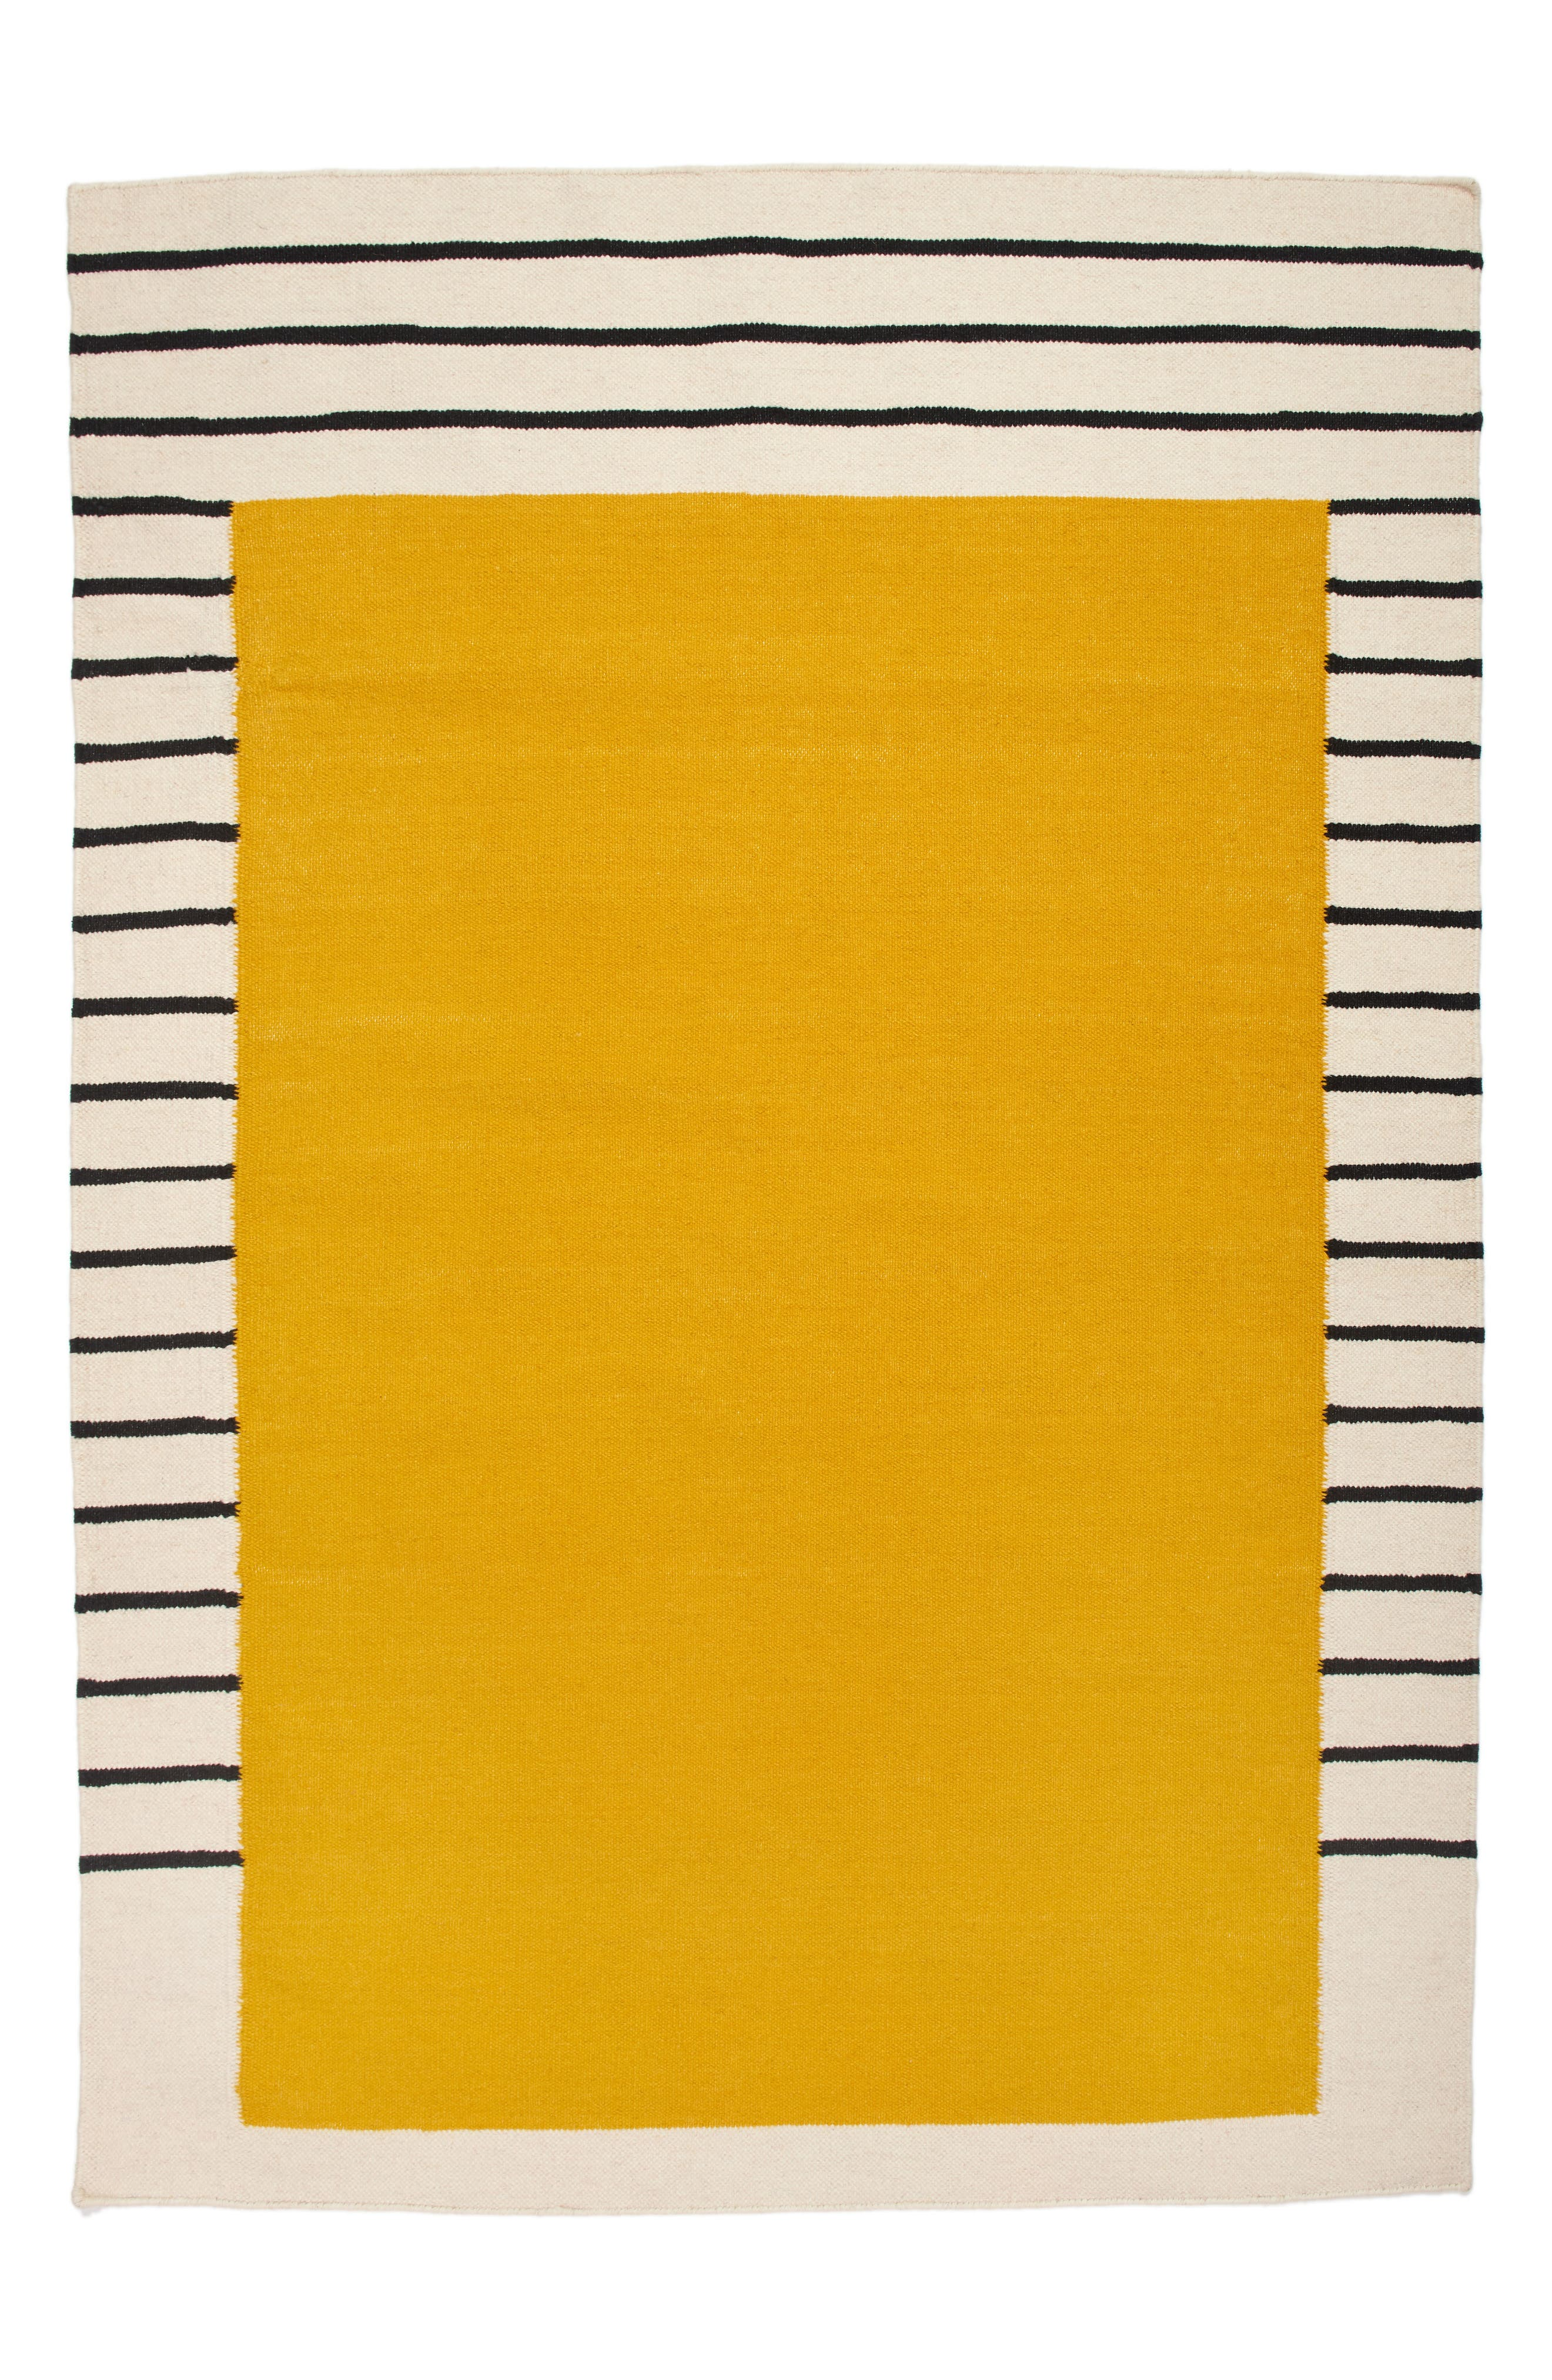 Suzanne Flat Weave Rug,                             Main thumbnail 1, color,                             YELLOW